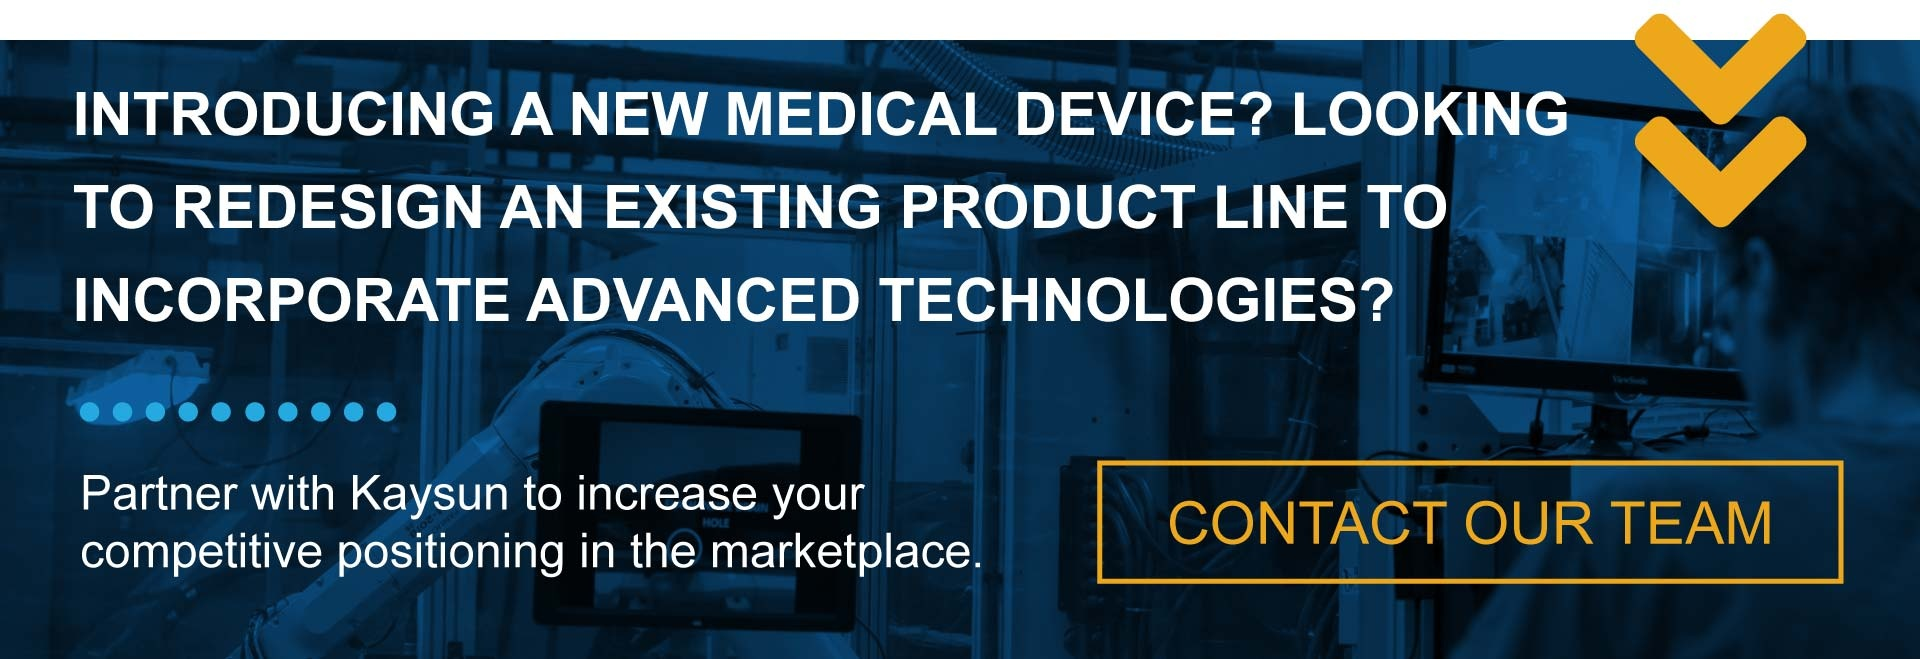 Contact our team today to increase your competitive positioning in the medical device market